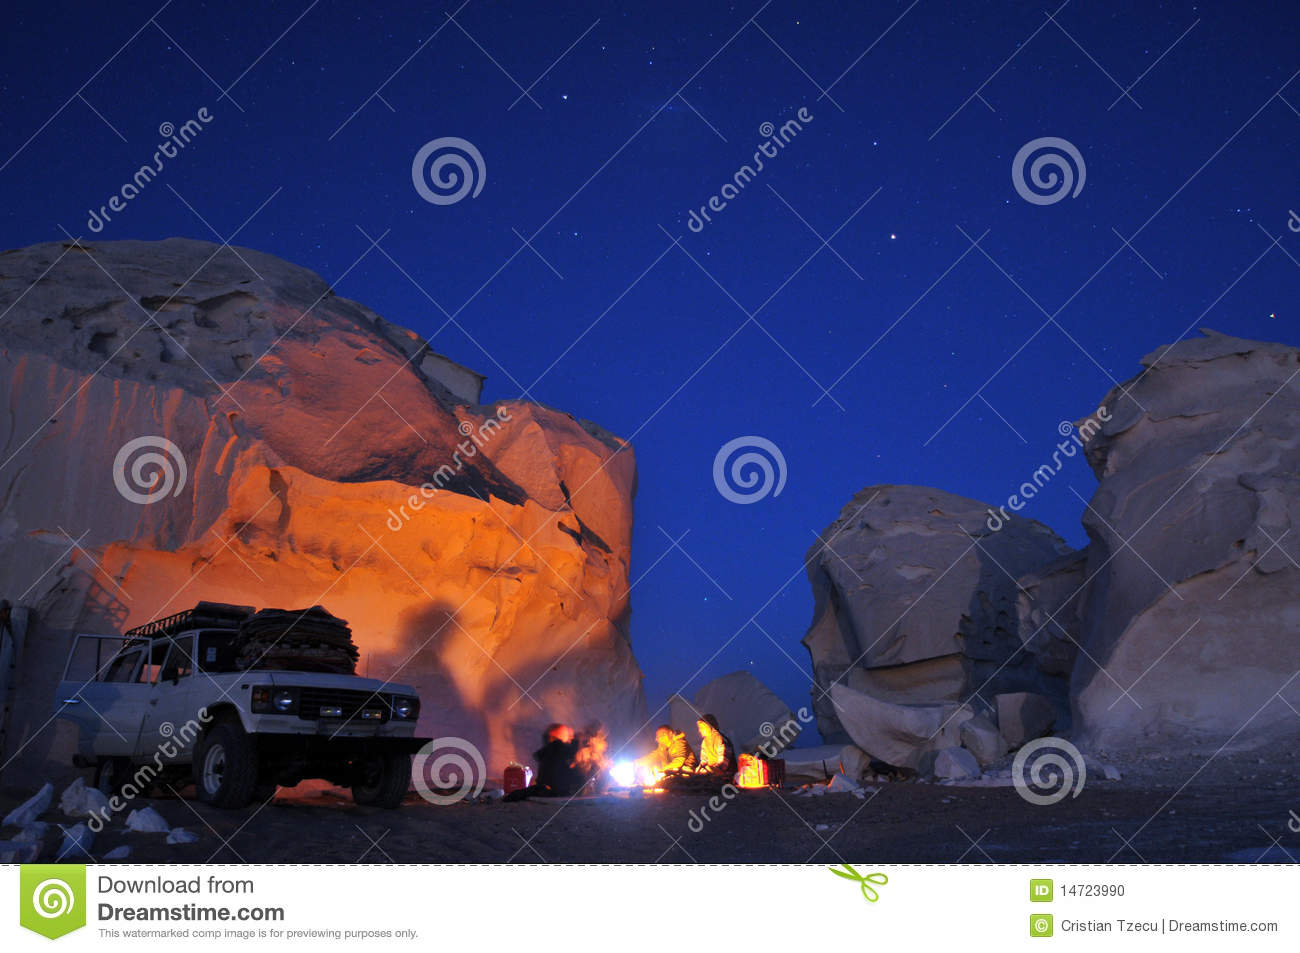 Campfire in the desert